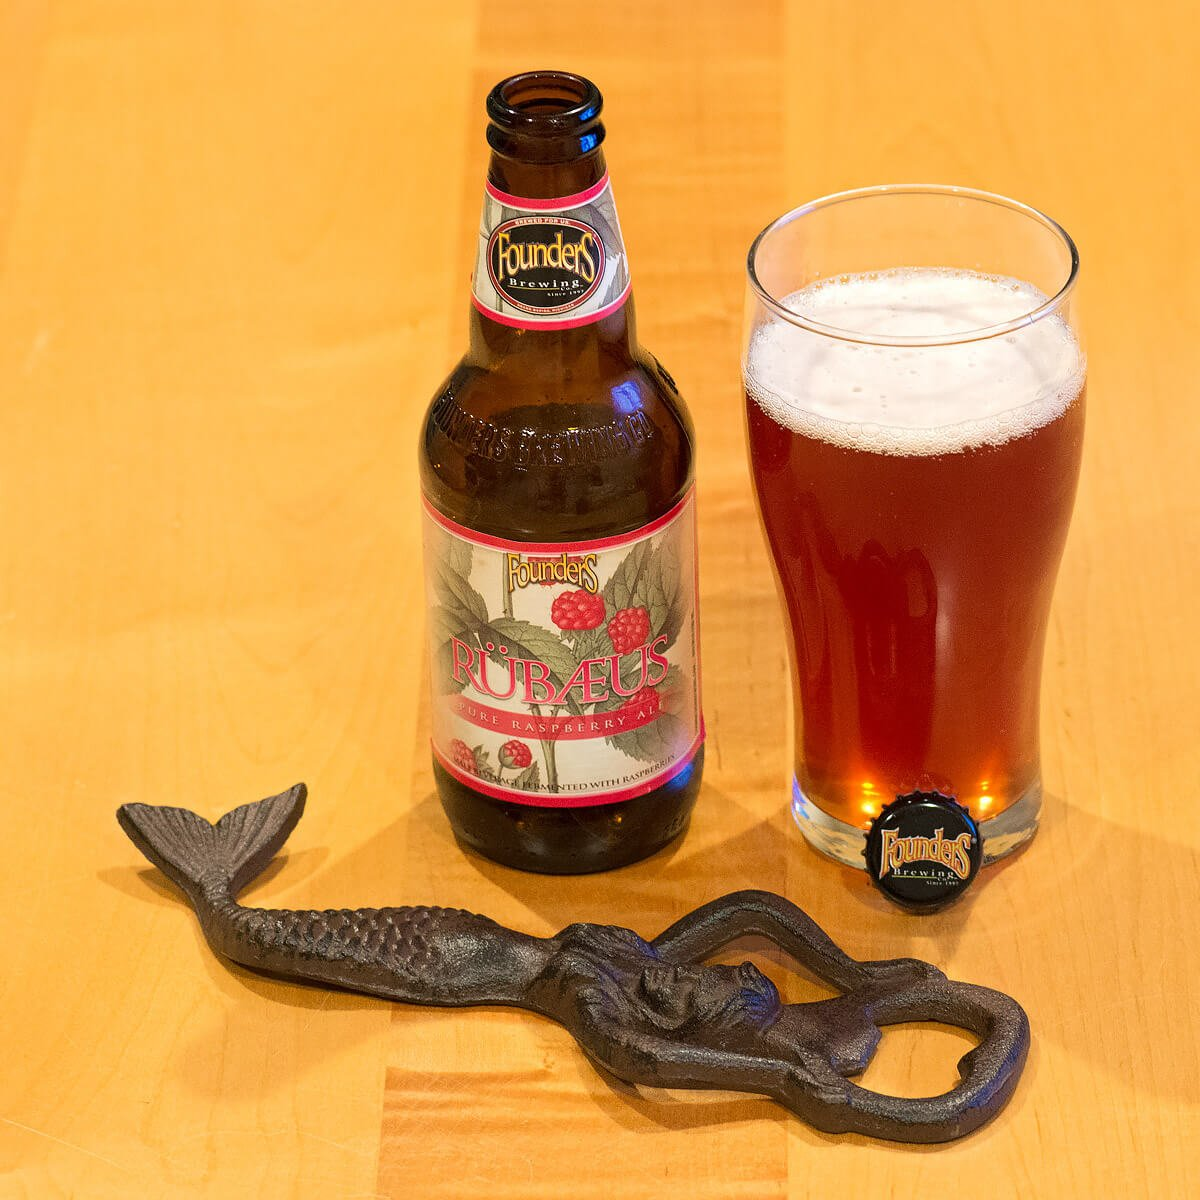 ONE Founders Brewing Co Tulip Shaped Beer Tasting Glass